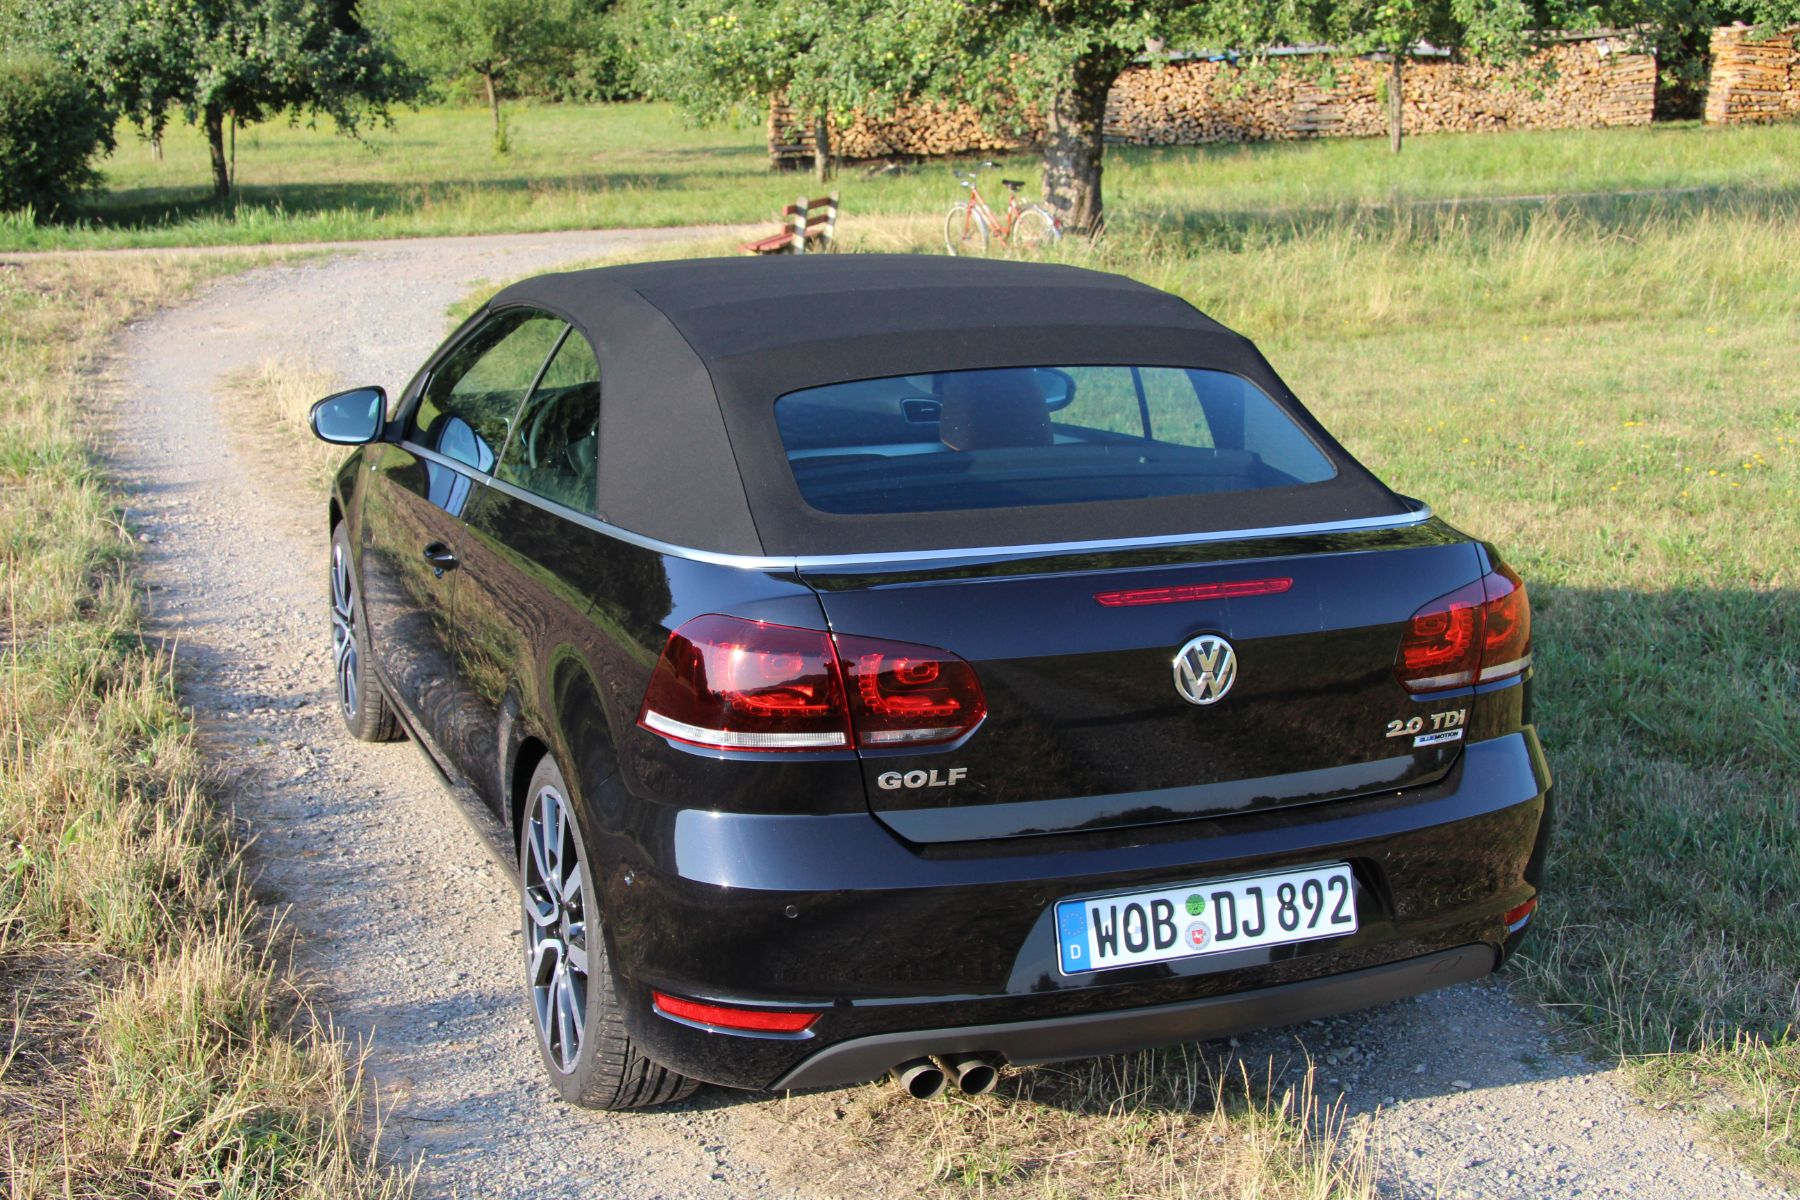 vw golf cabrio der offene volkswagen der. Black Bedroom Furniture Sets. Home Design Ideas